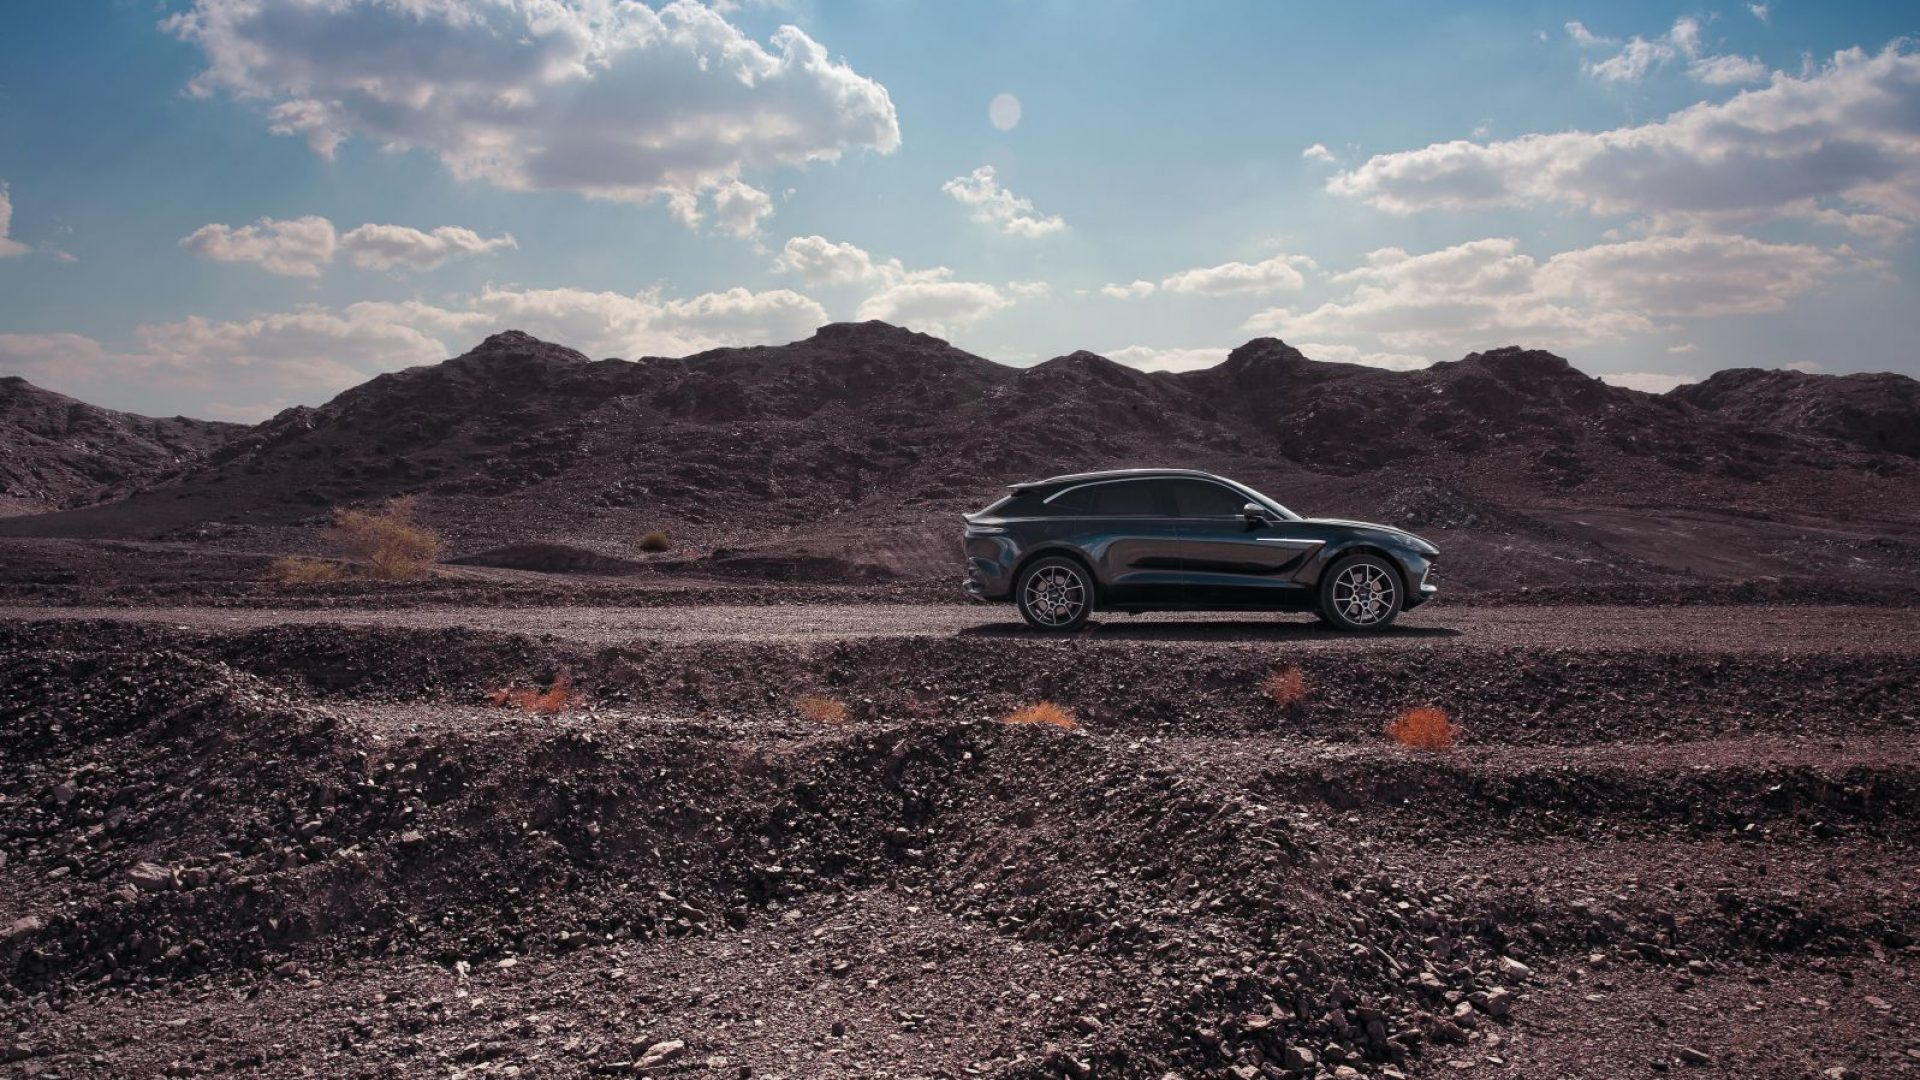 aston-martin-dbx-in-the-middle-east-28-jpg.